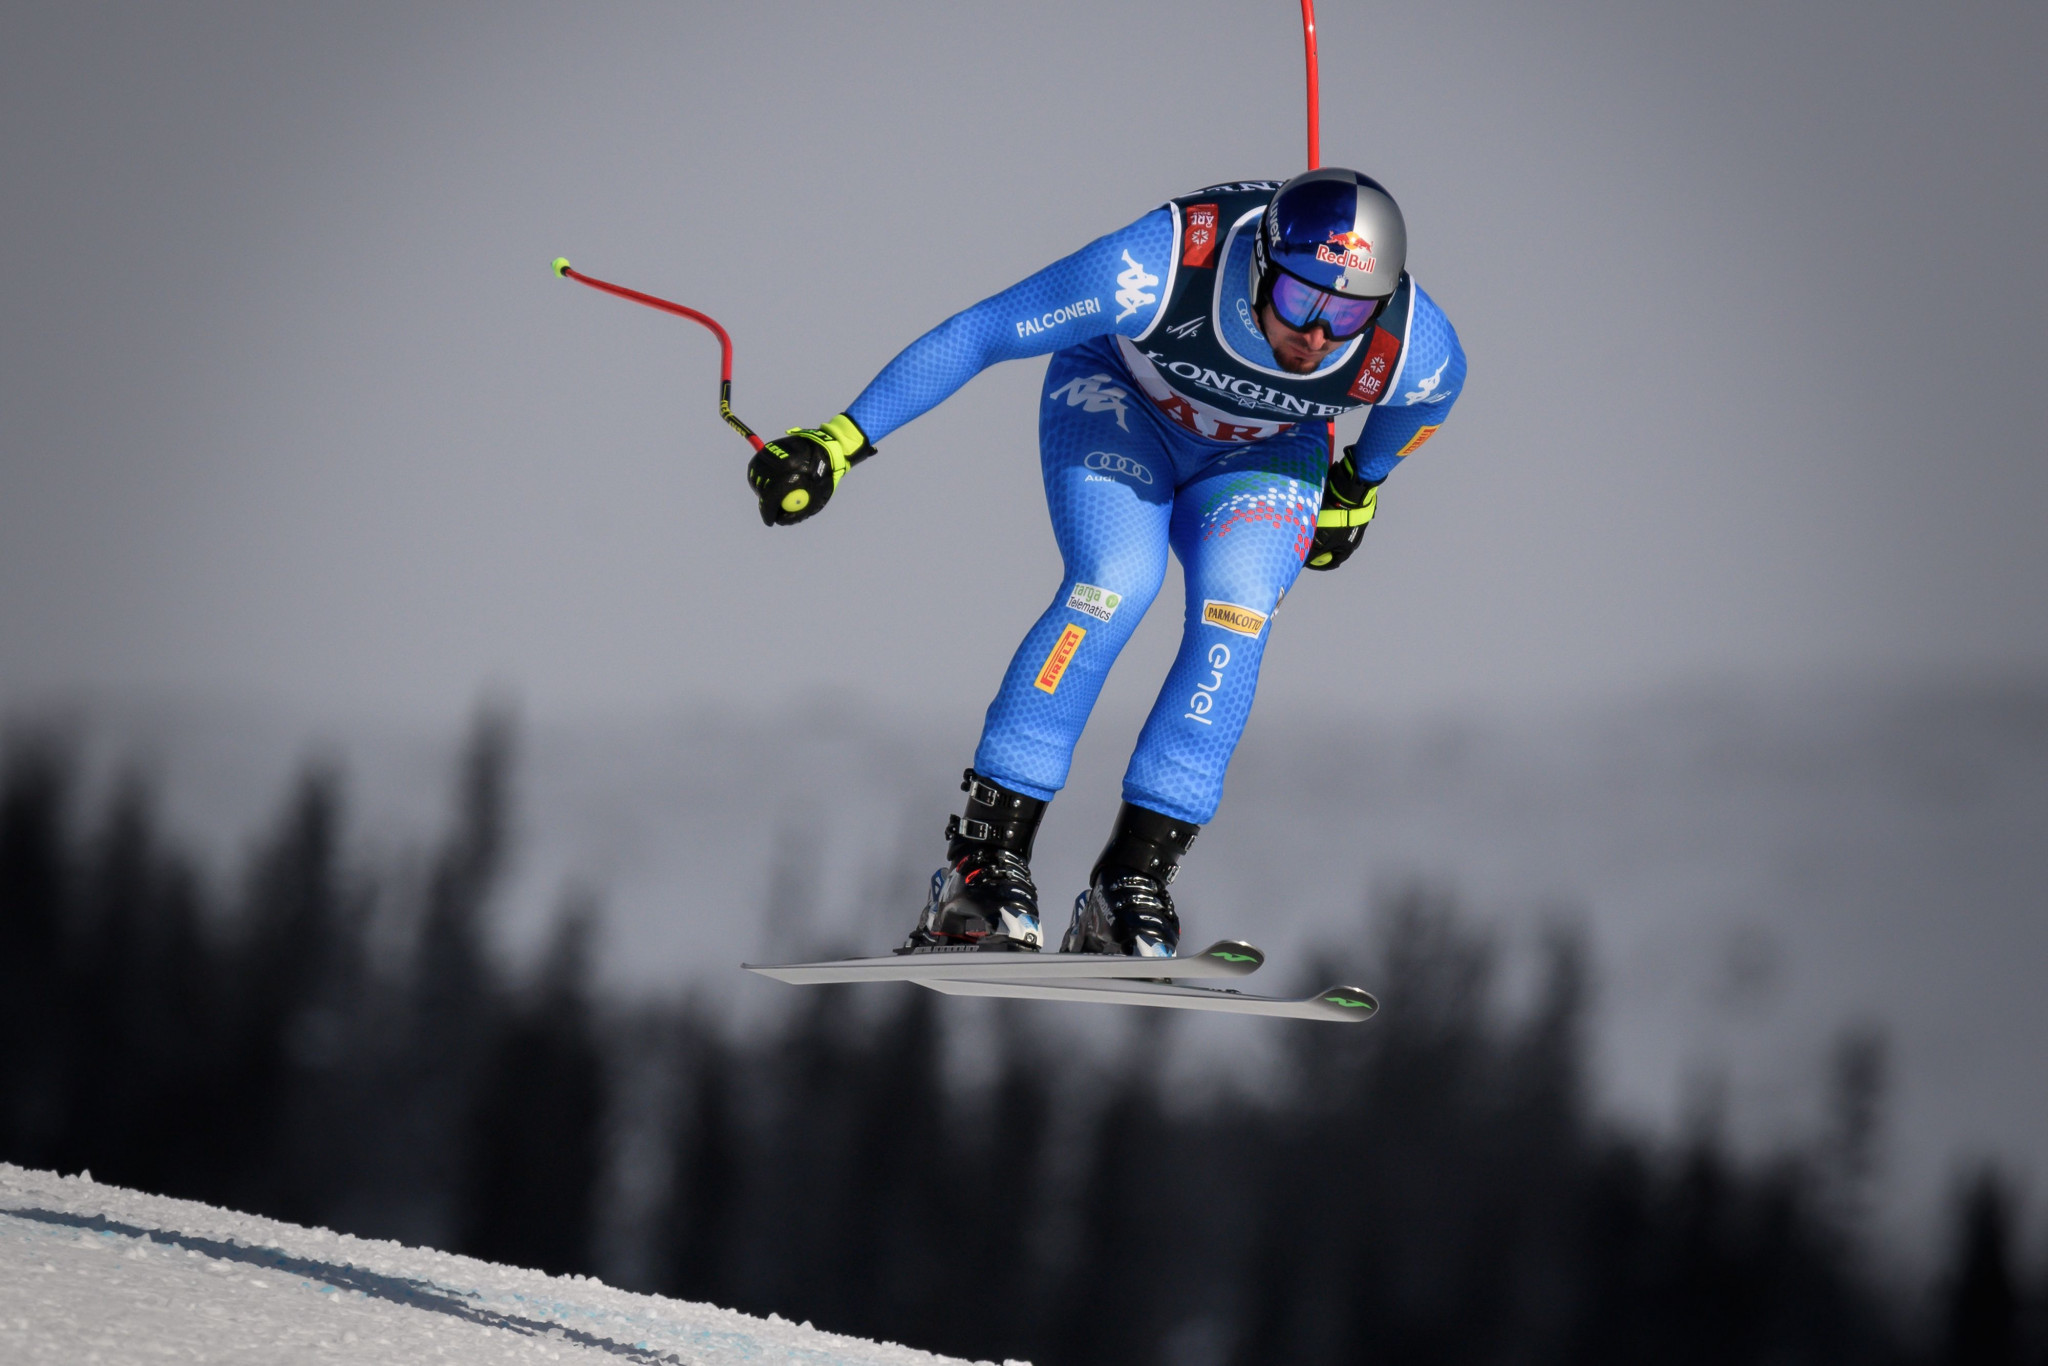 Italy's Dominik Paris led after the downhill stage of the event ©Getty Images